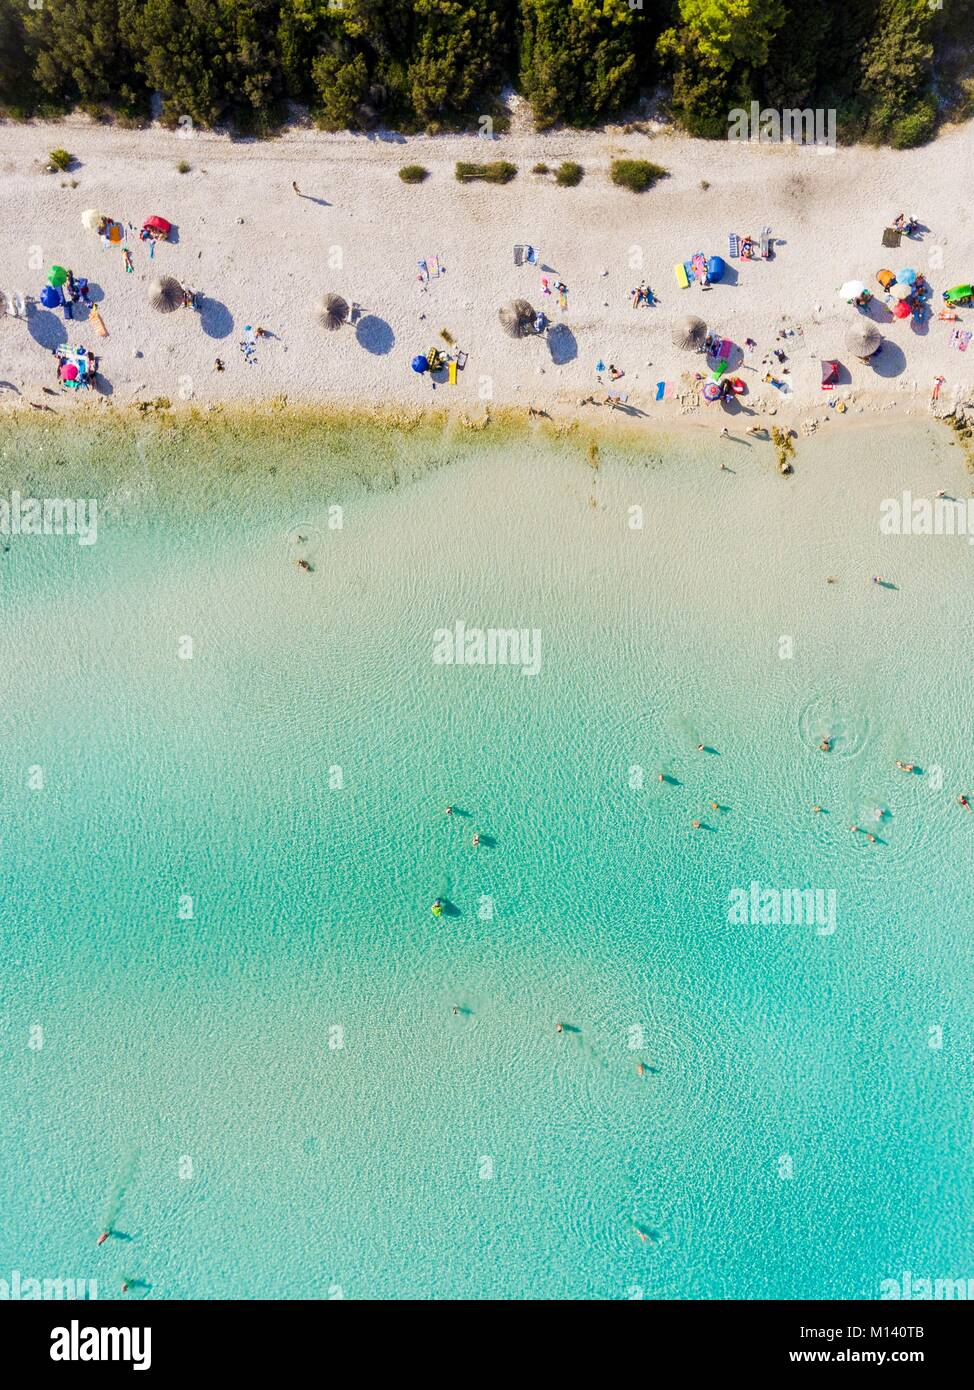 Croatia, North Dalmatia, Dalmatian coast, Zadar archipelago, Dugi Otok island, Sakarun beach (aerial view) Stock Photo